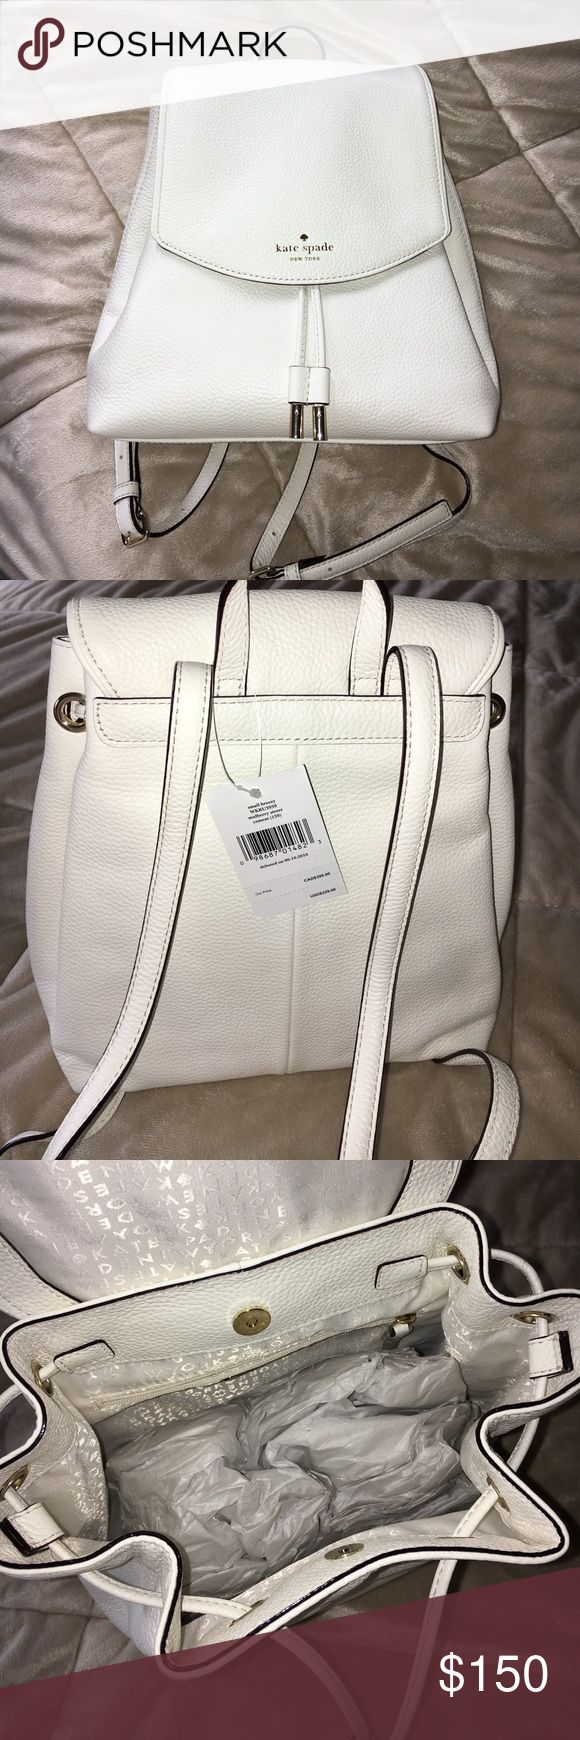 KS Backpack ♠️ Small Breezy - Mulberry Street KS Backpack. Color - Cement Price firm. Possibly looking to trade for Pink Blush or Mulled Wine. kate spade Bags Backpacks